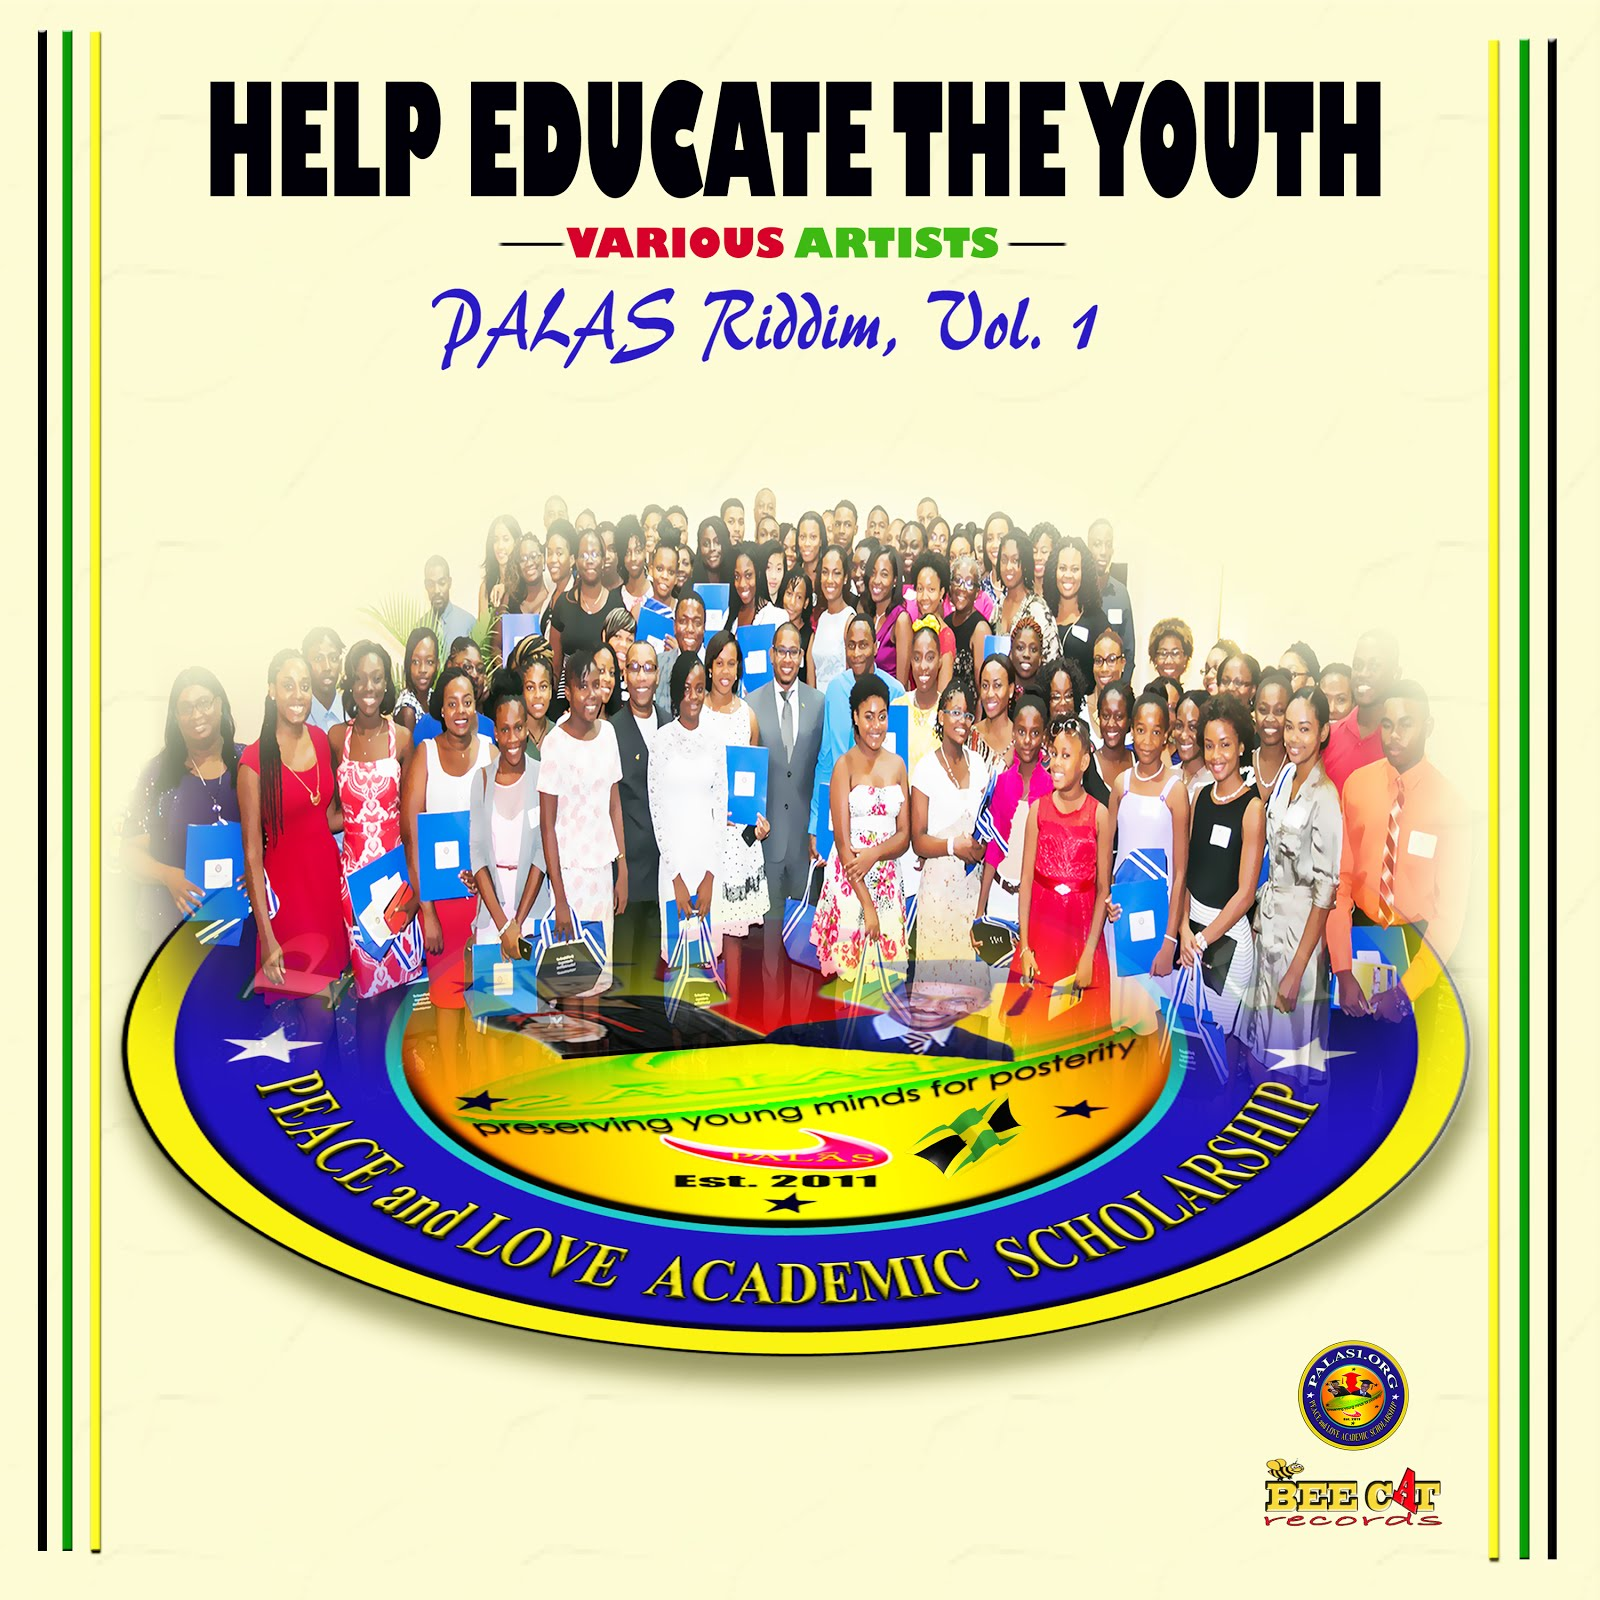 RULA BROWN - Help Educate the Youth, PALAS Riddim Vol. 1 Click Pic Below To Purchase $9.99